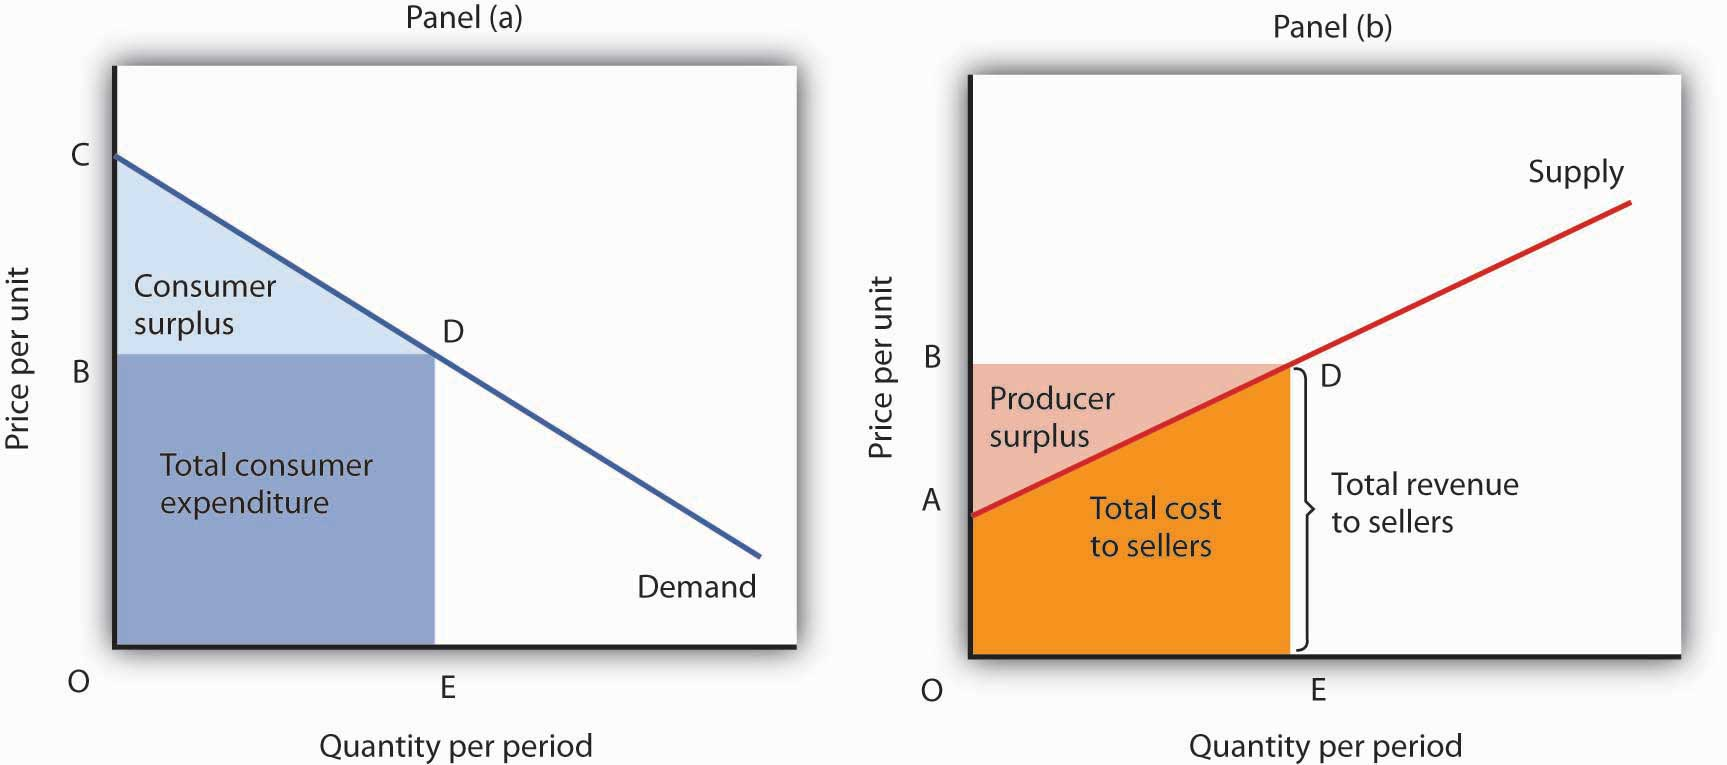 Consumer and Producer Surplus. Consumer surplus [Panel (a)] measures the difference between total benefit of consuming a given quantity of output and the total expenditures consumers pay to obtain that quantity. Here, total benefits are given by the shaded area OCDE; total expenditures are given by the rectangle OBDE. The difference, shown by the triangle BCD, is consumer surplus.